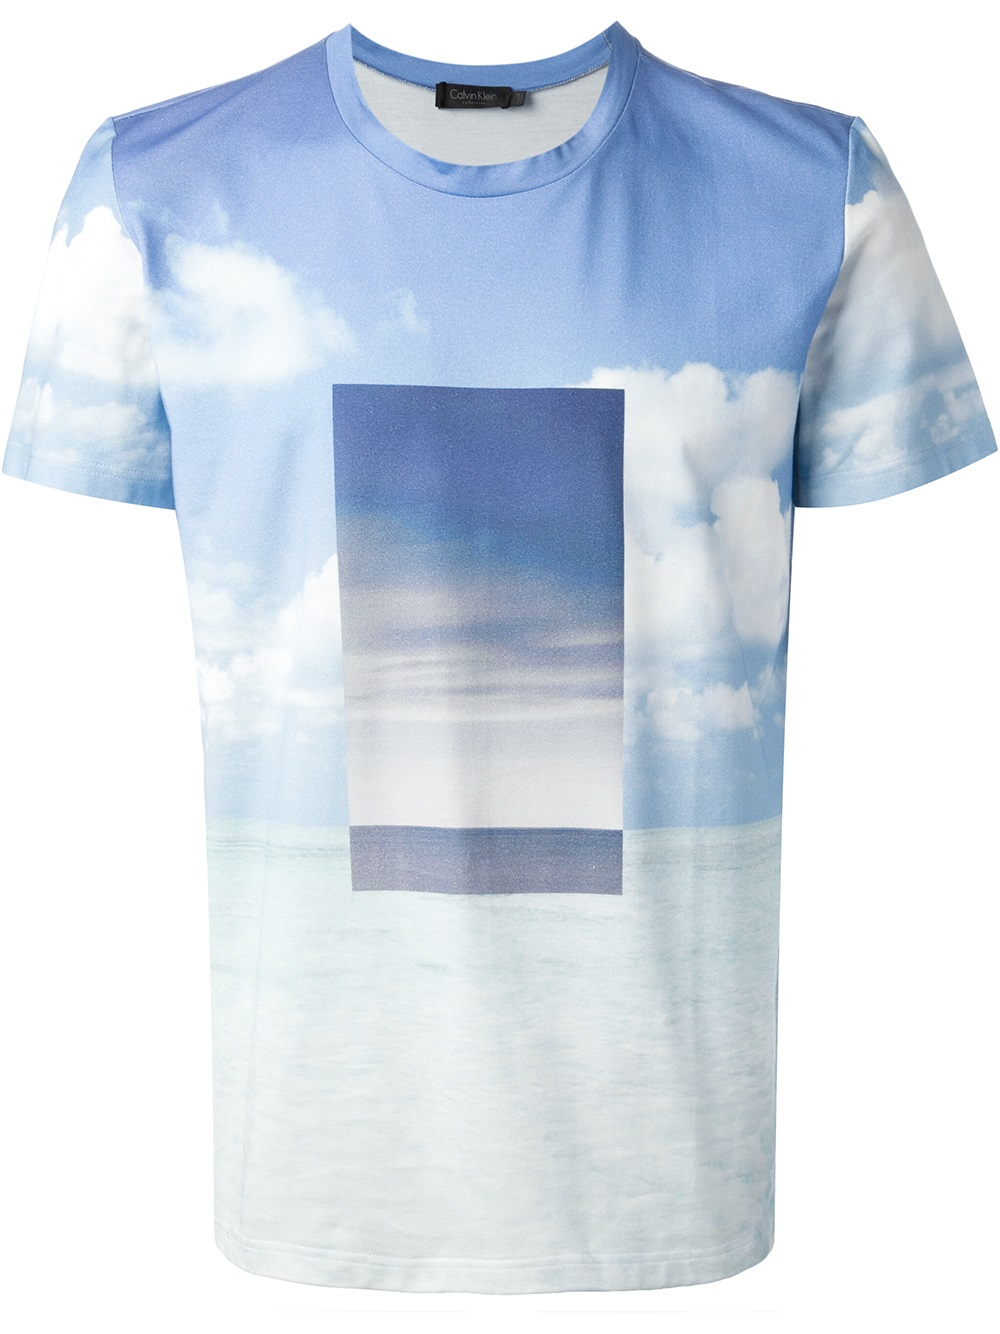 lyst calvin klein scenic print tshirt in blue for men. Black Bedroom Furniture Sets. Home Design Ideas